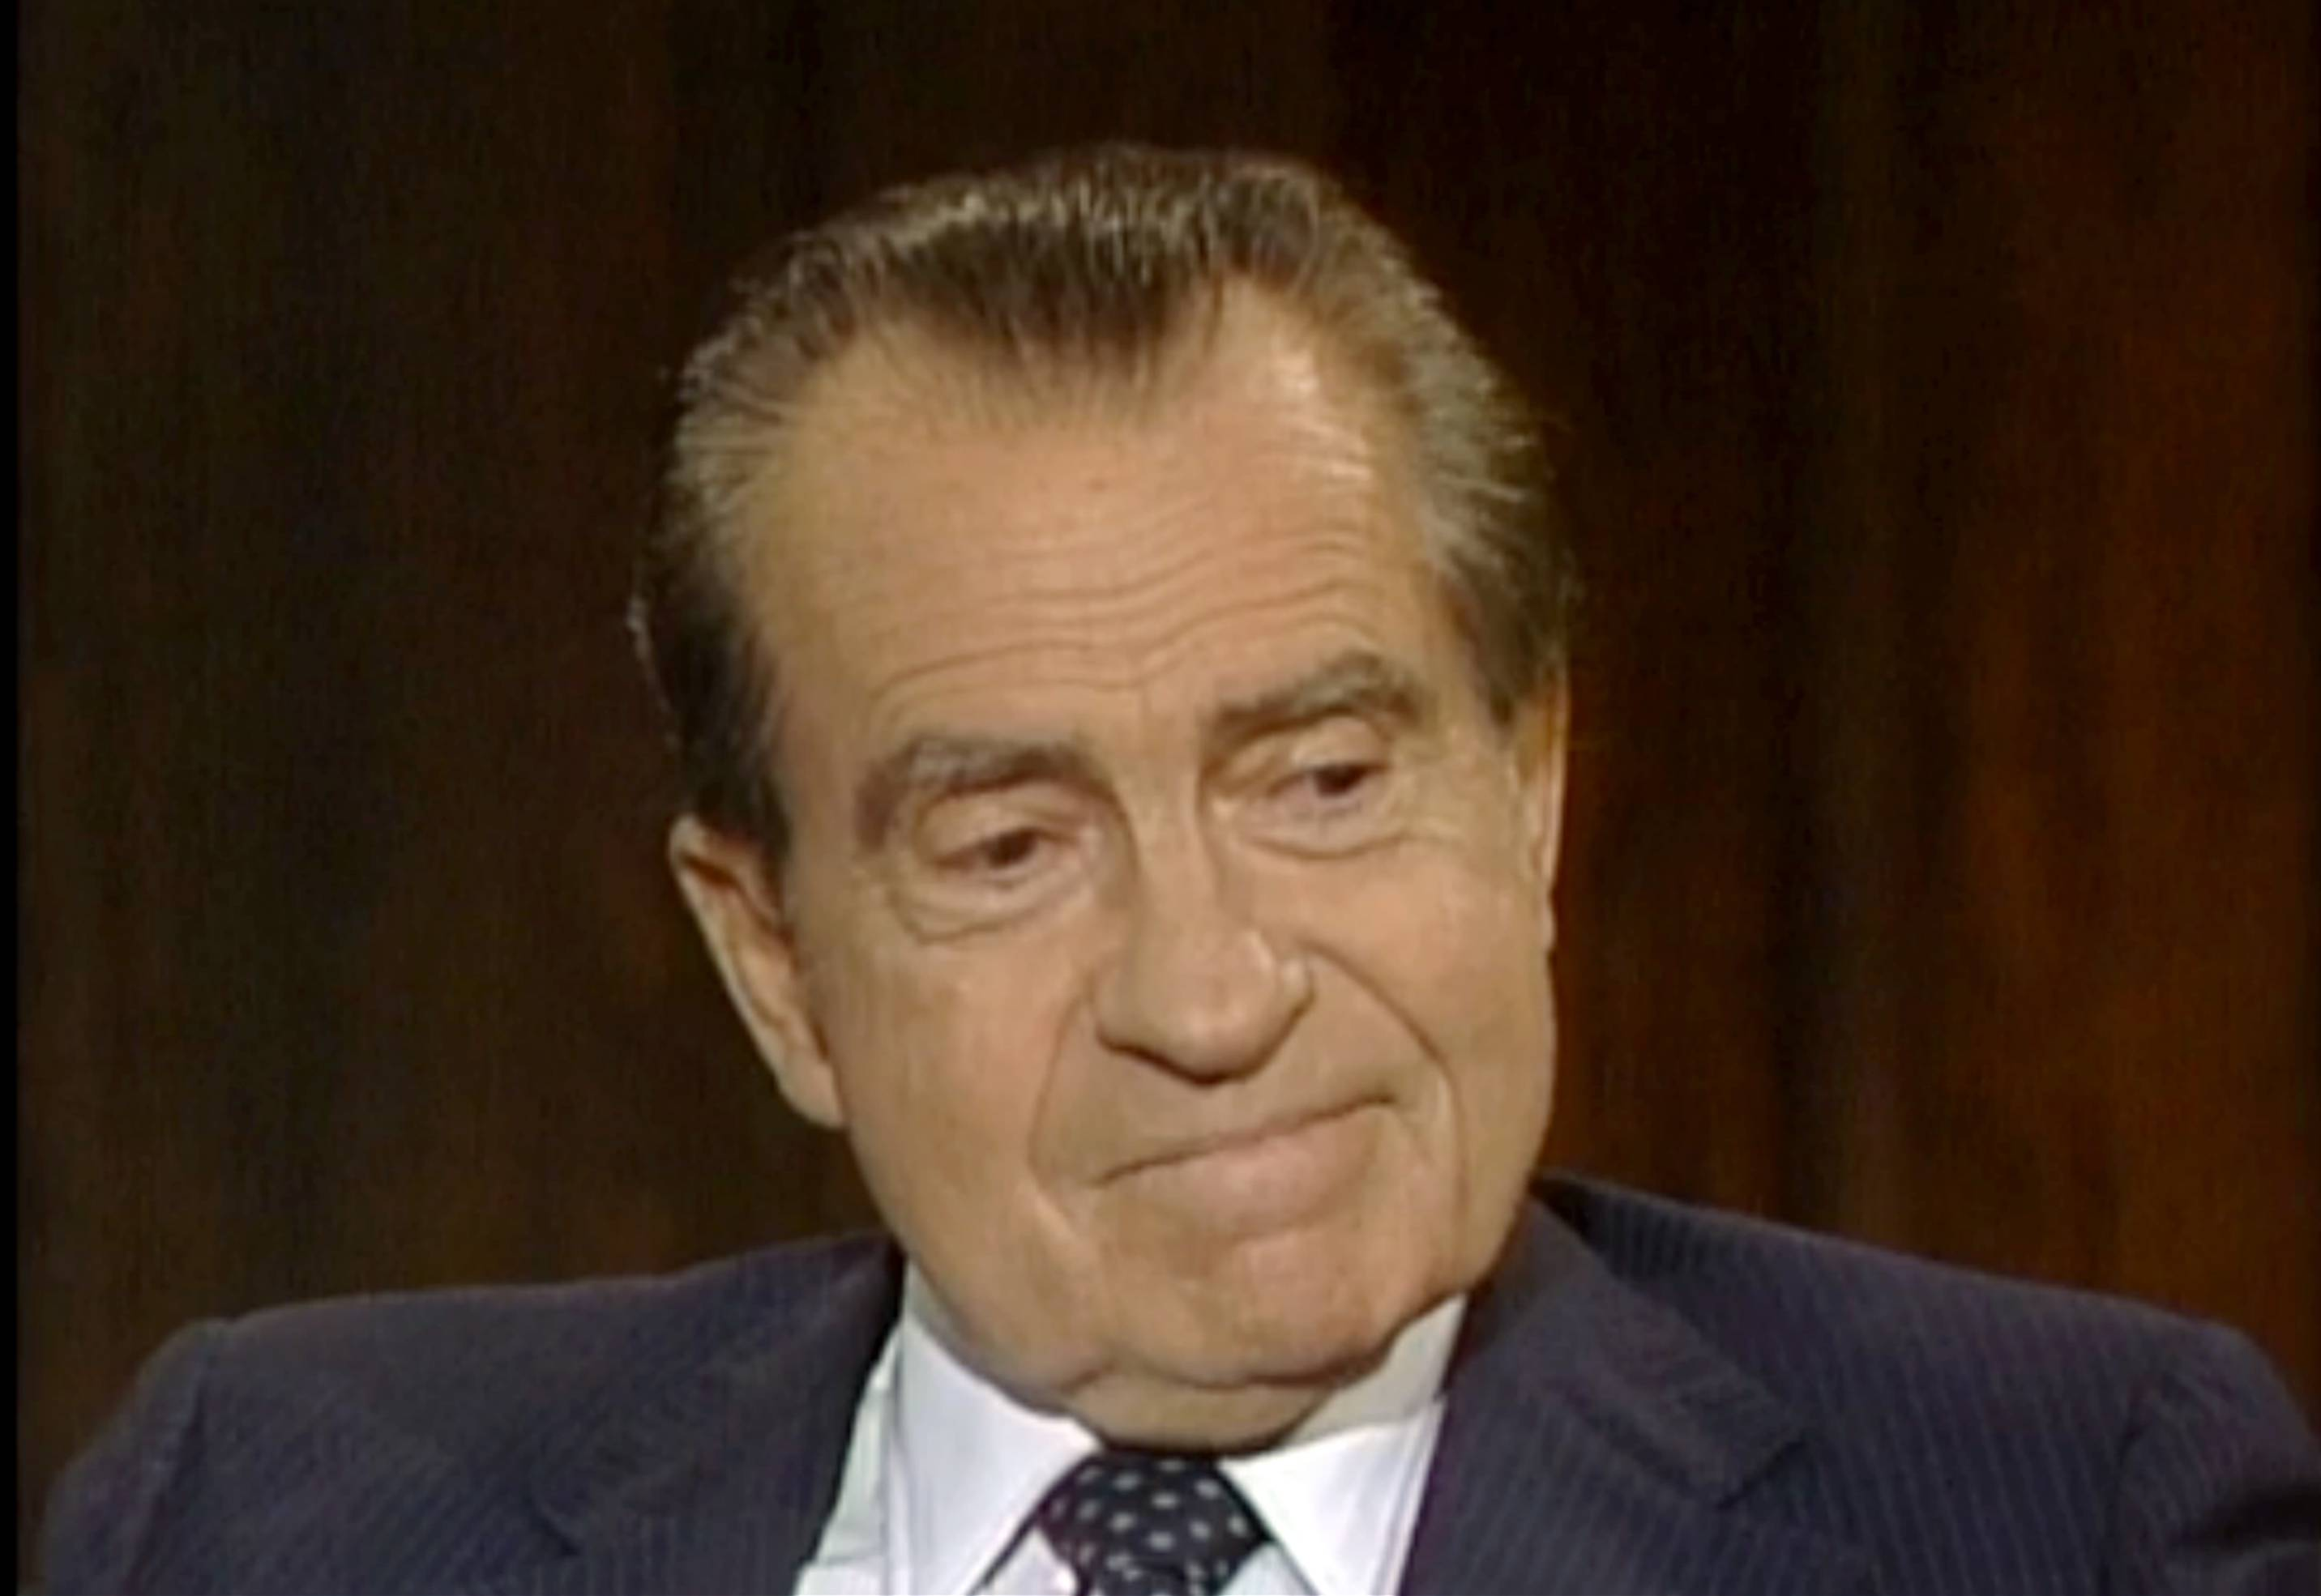 The Richard Nixon Presidential Library and the privately held Nixon Foundation are co-releasing a trove of videotaped interviews with the former president to mark the 40th anniversary of his resignation following the Watergate scandal. The 28 minutes of tape, detailing Nixon's personal turmoil in his final week in office, were culled from more than 30 hours of tape recorded in 1983.